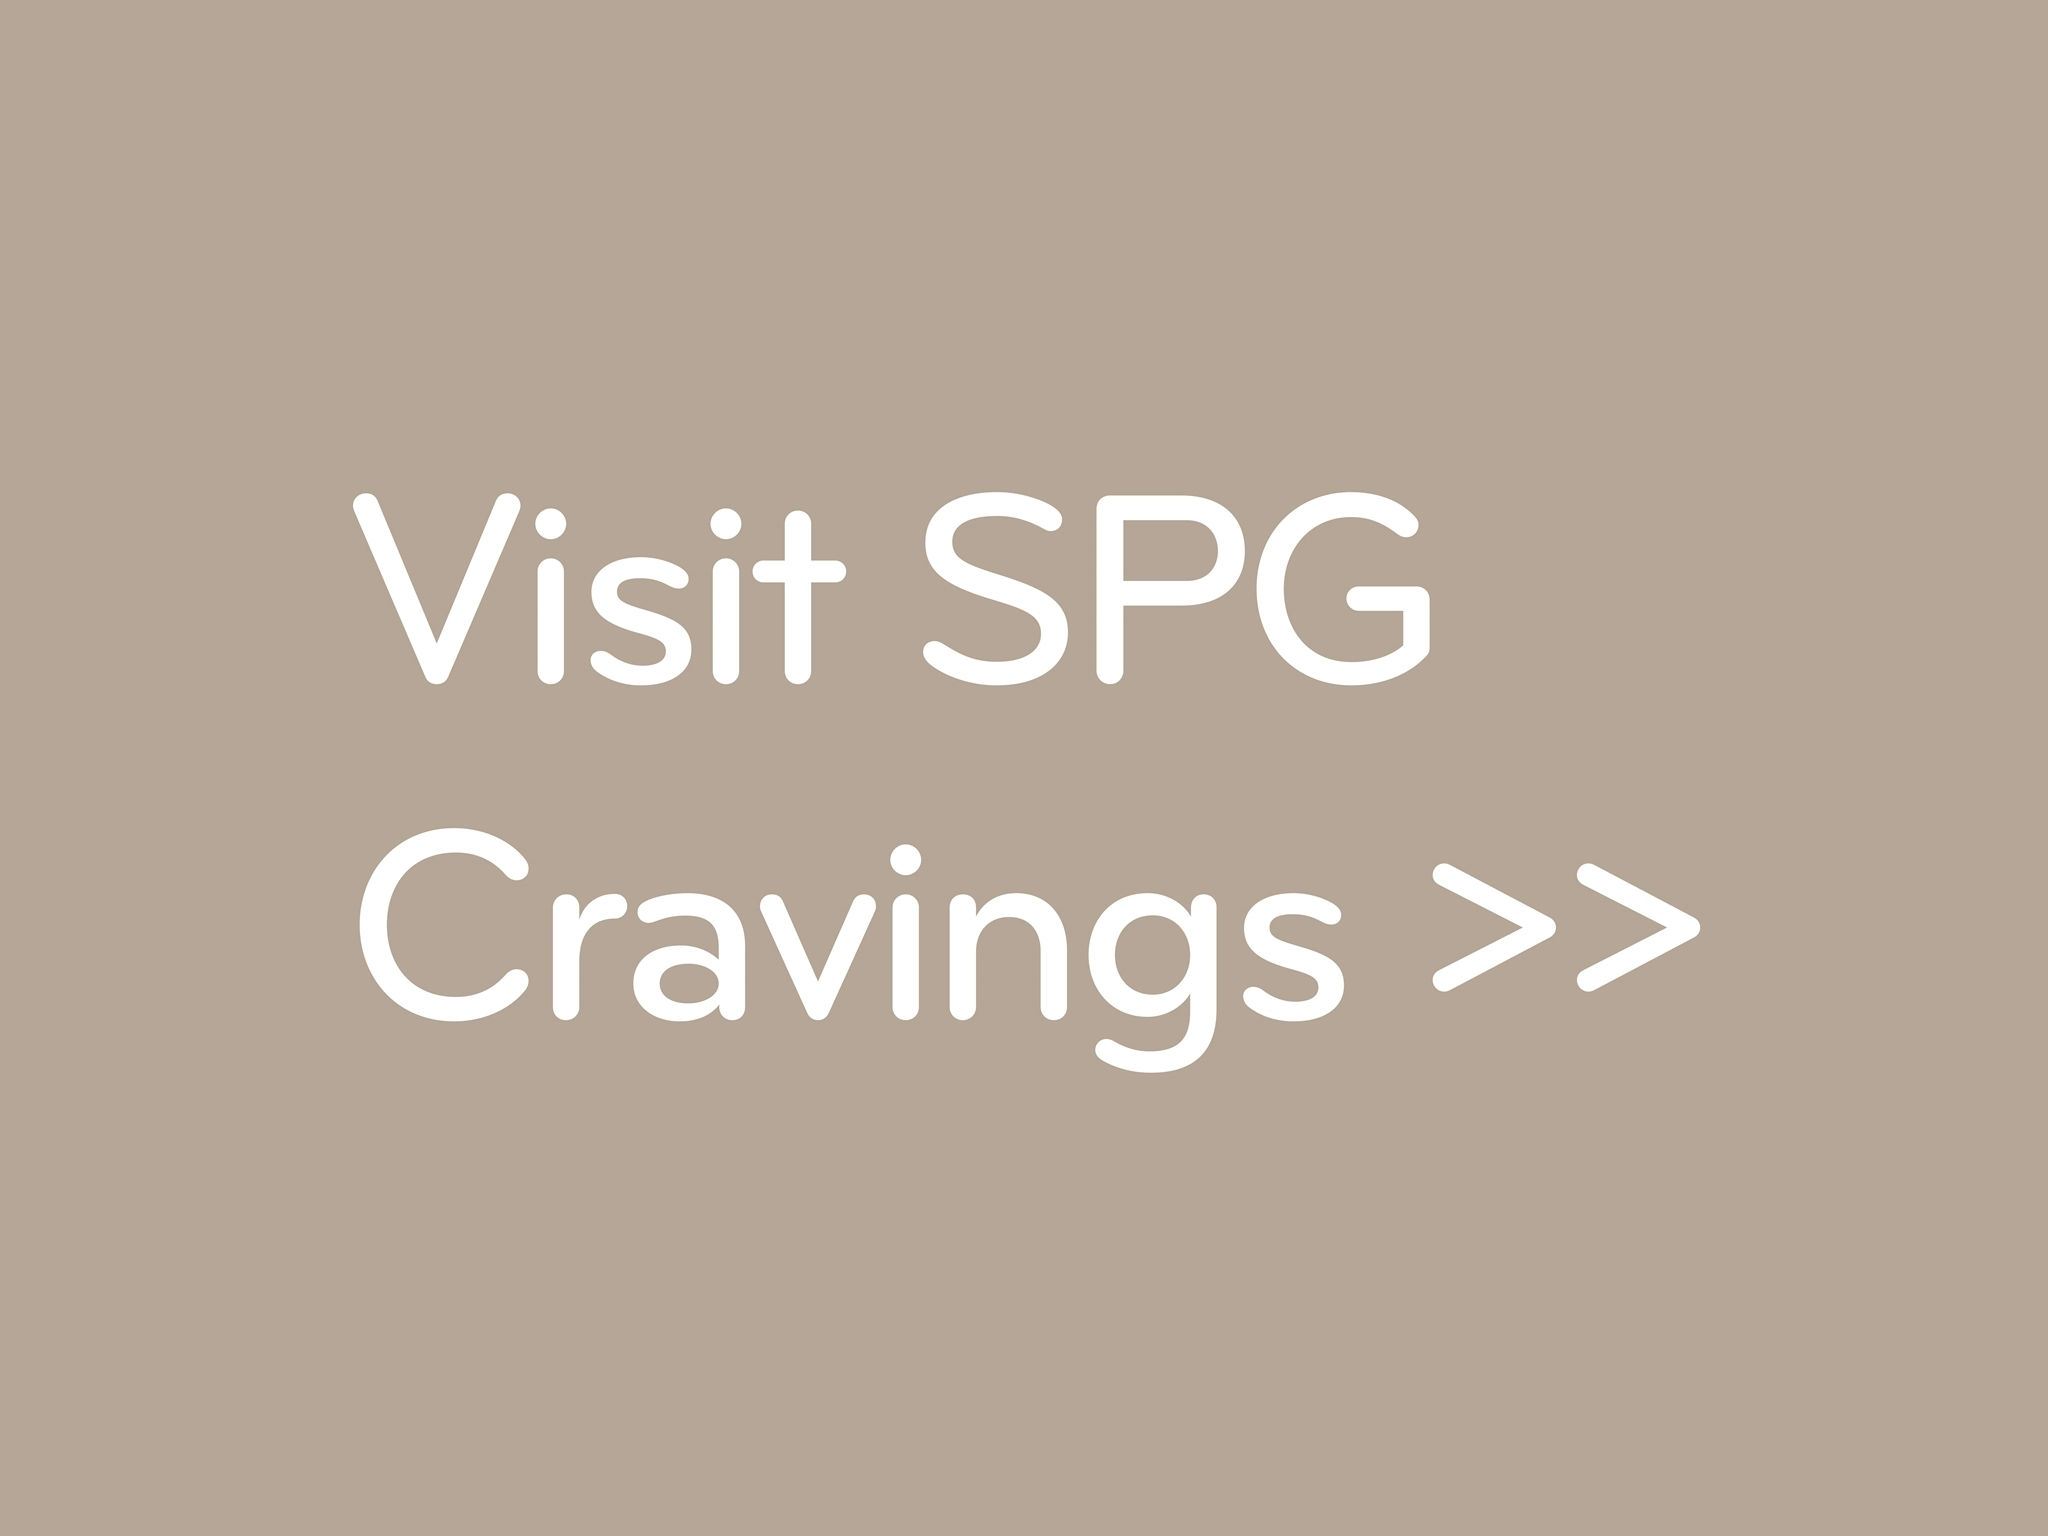 Visit SPG Cravings